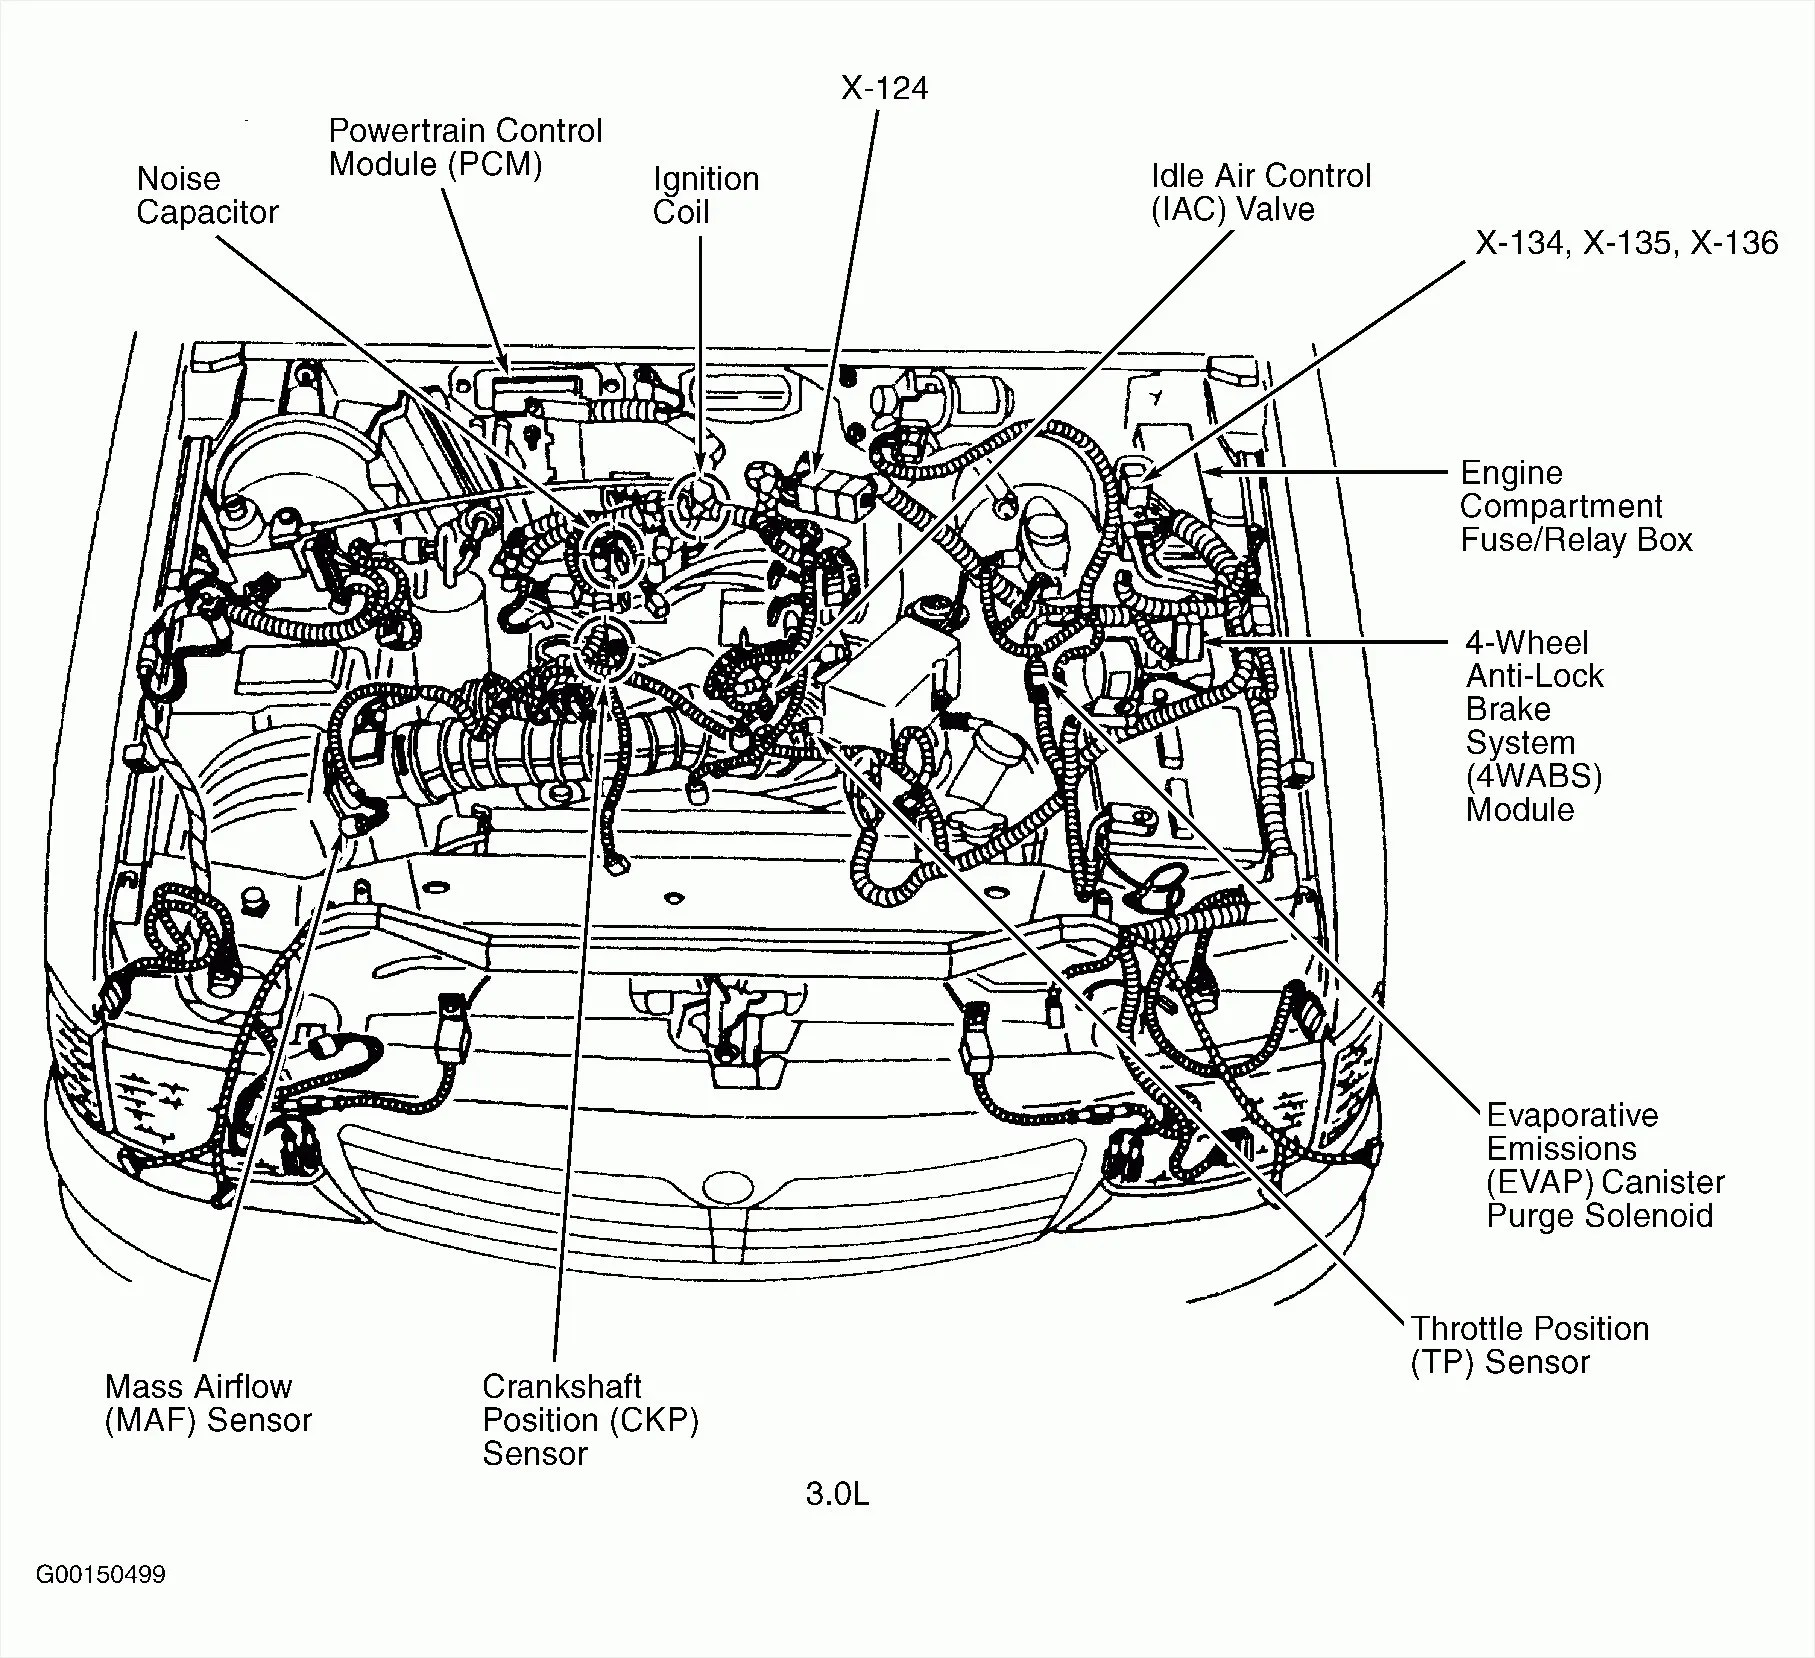 hight resolution of 2010 ford ranger engine diagram wiring diagram toolbox ford focus engine diagram to download 2003 ford focus engine diagram